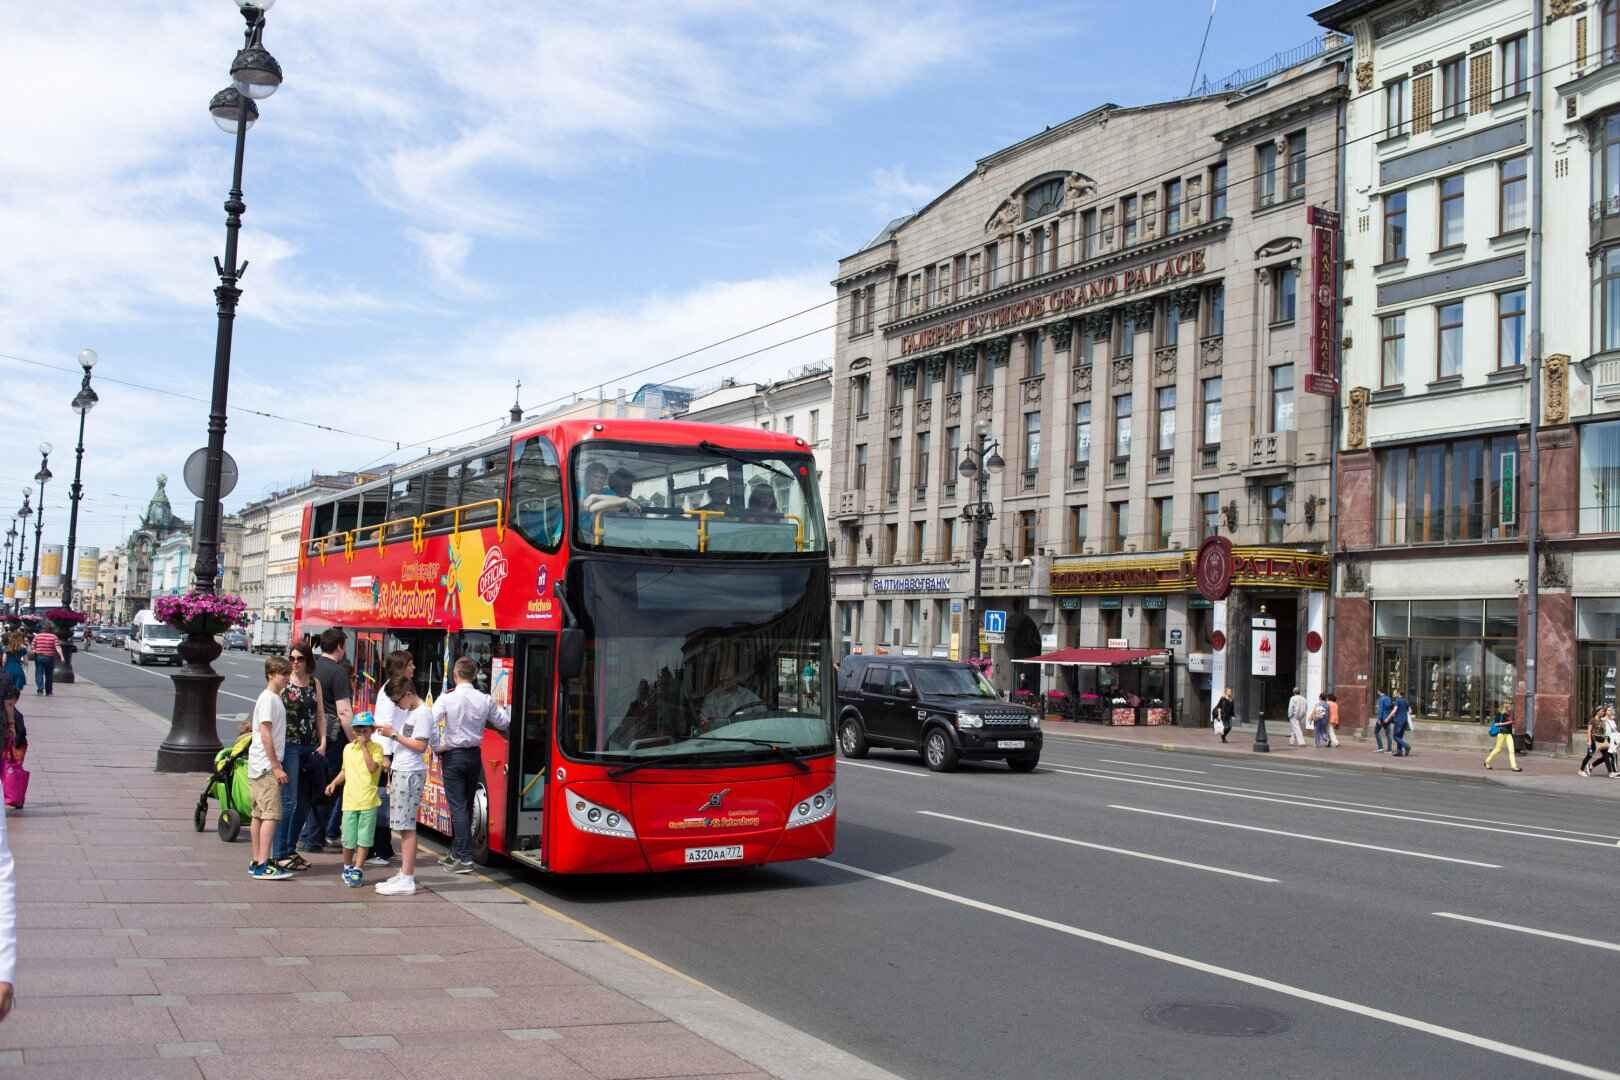 : Sightseeing tour across St. Petersburg by bus | Buses City Sightseeing | Card St. Petersburg City Pass, Фото 8